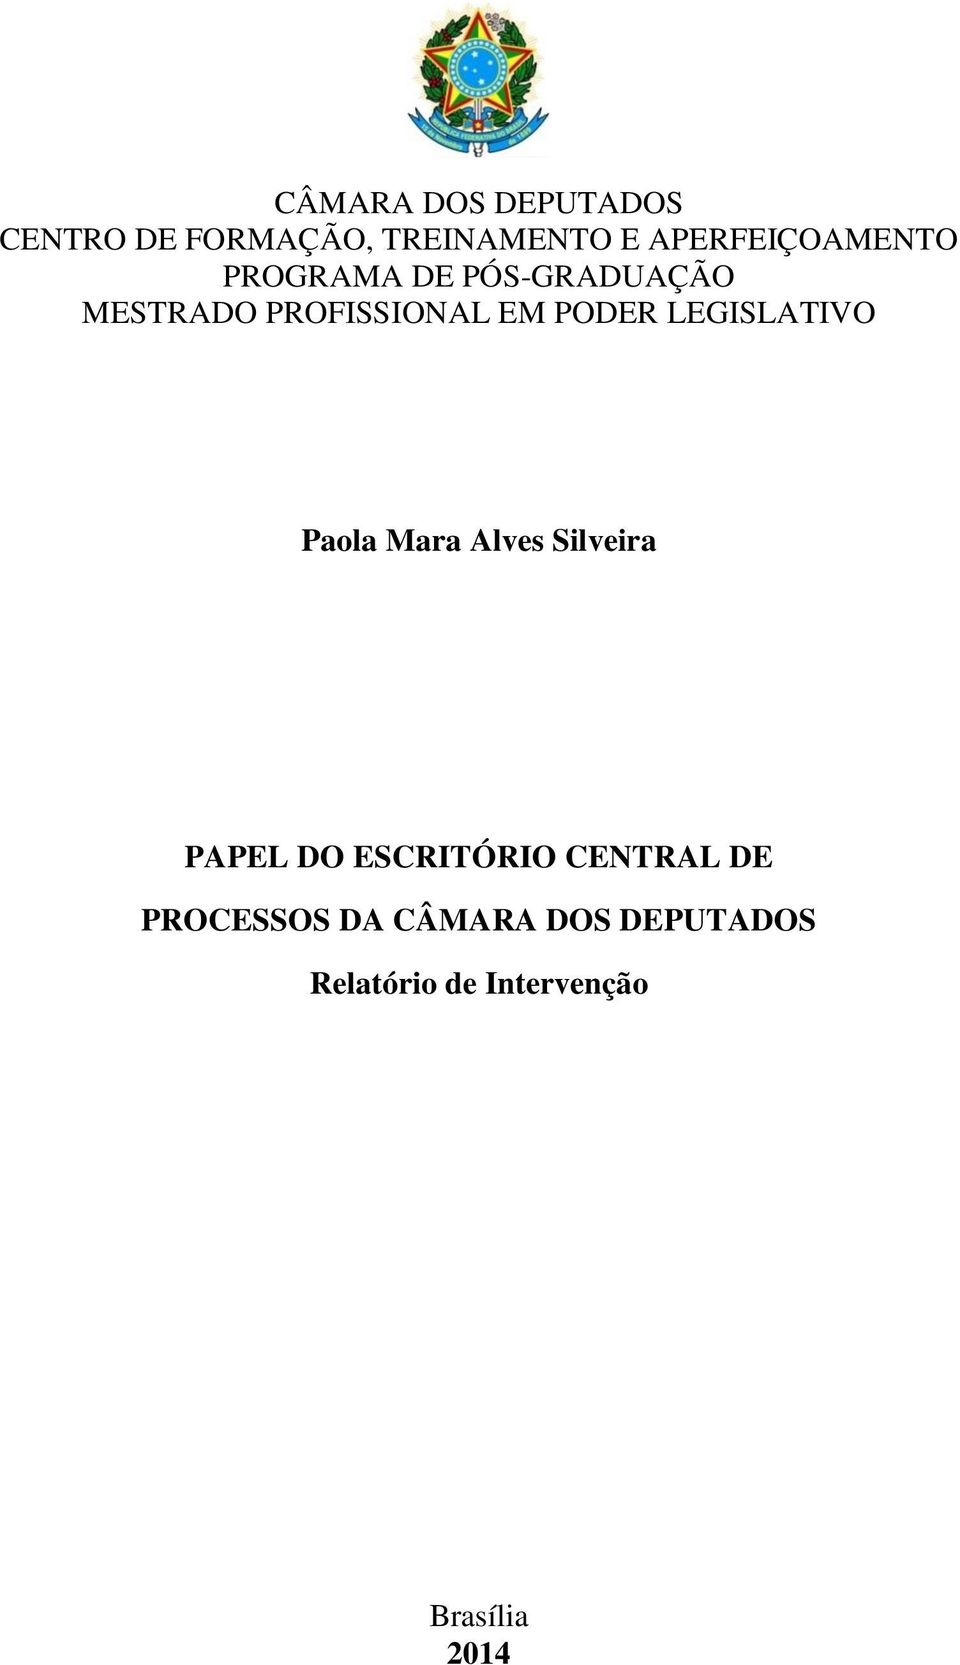 PODER LEGISLATIVO Paola Mara Alves Silveira PAPEL DO ESCRITÓRIO